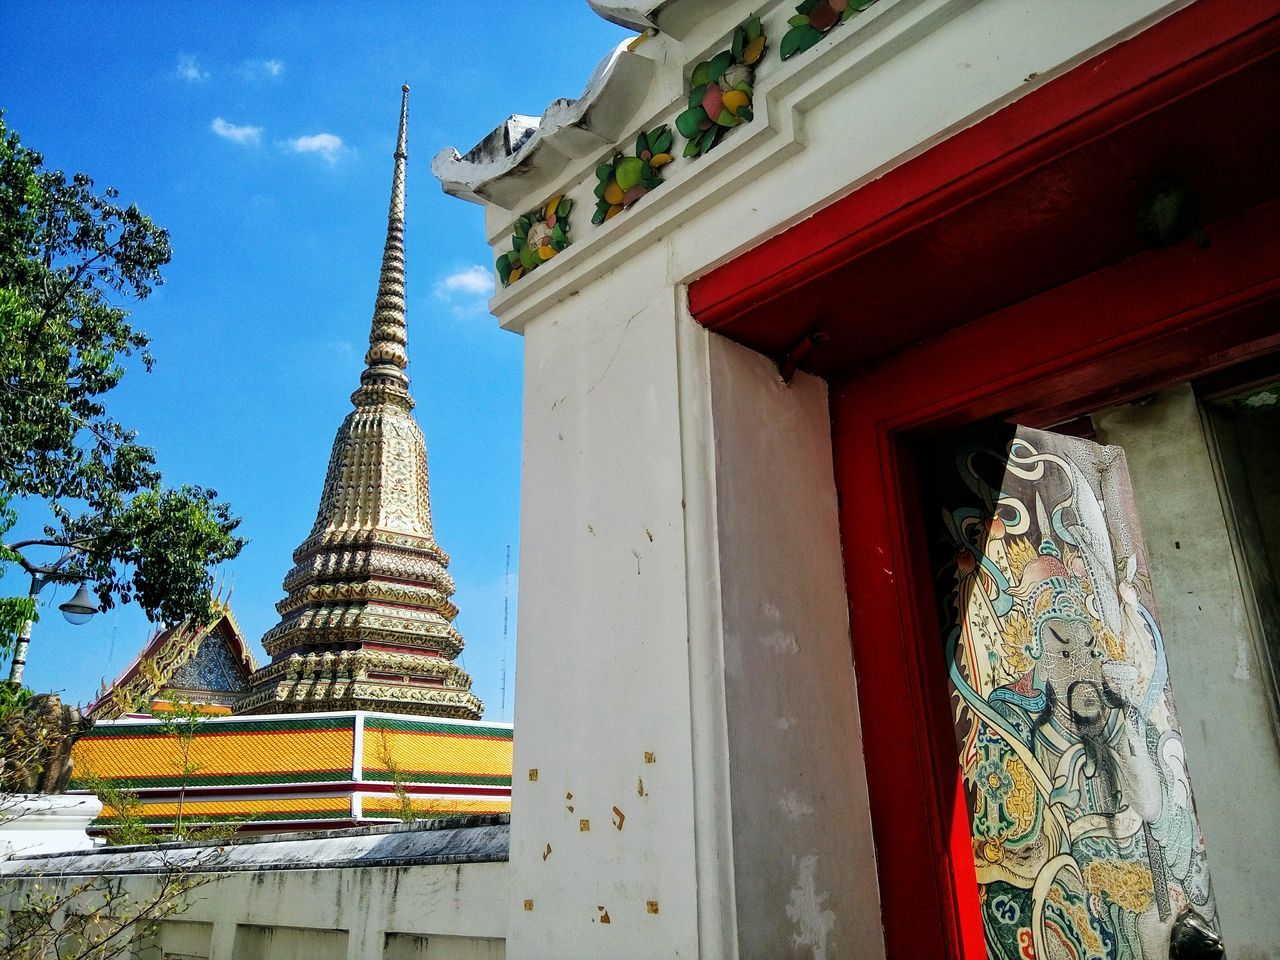 Architecture Built Structure Building Exterior Outdoors Tourism No People Travel Destinations Tradition Gold Colored Sky Day Travel ASIA Thailand Bangkok Cultures Place Of Worship Colorful Ornaments Design Temple Gold Wat Pho Door Buddhism